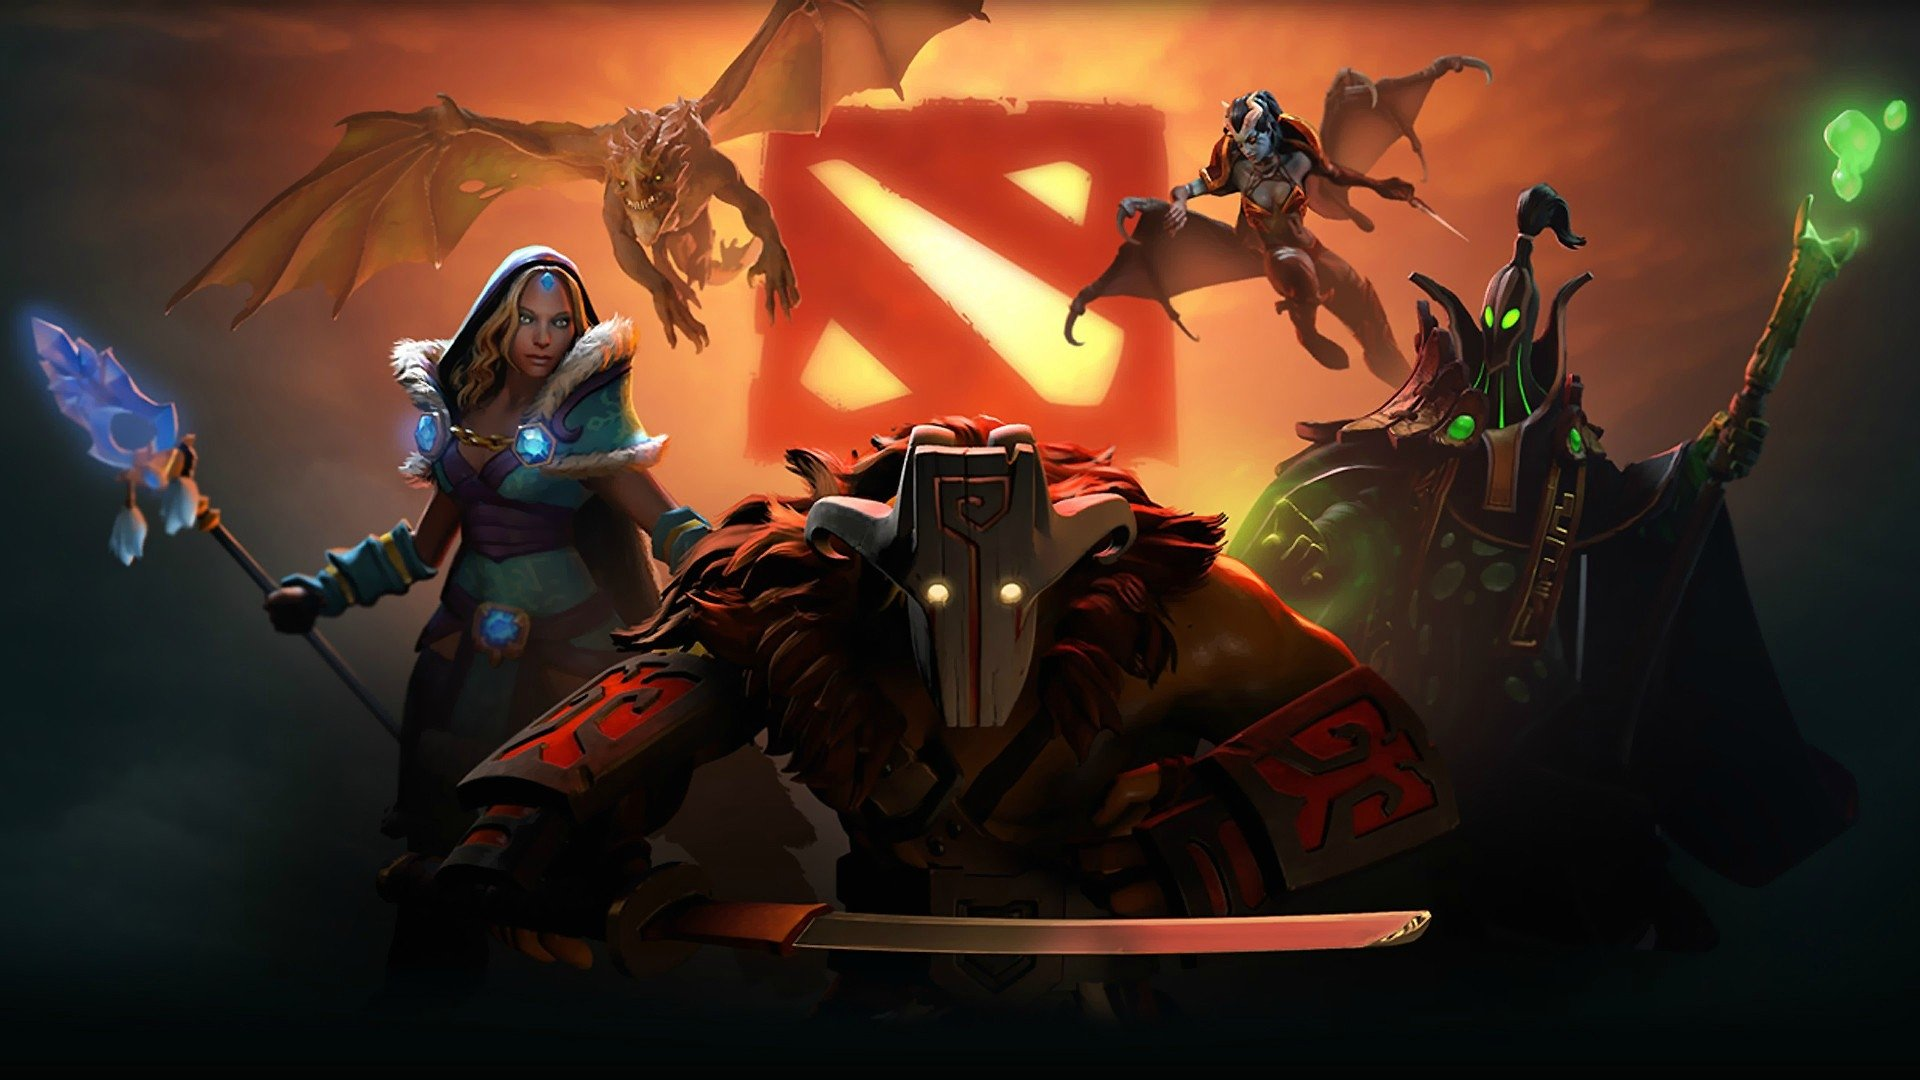 The Dota 2 Chongqing Major Could Get Cancelled After Racist Taunts